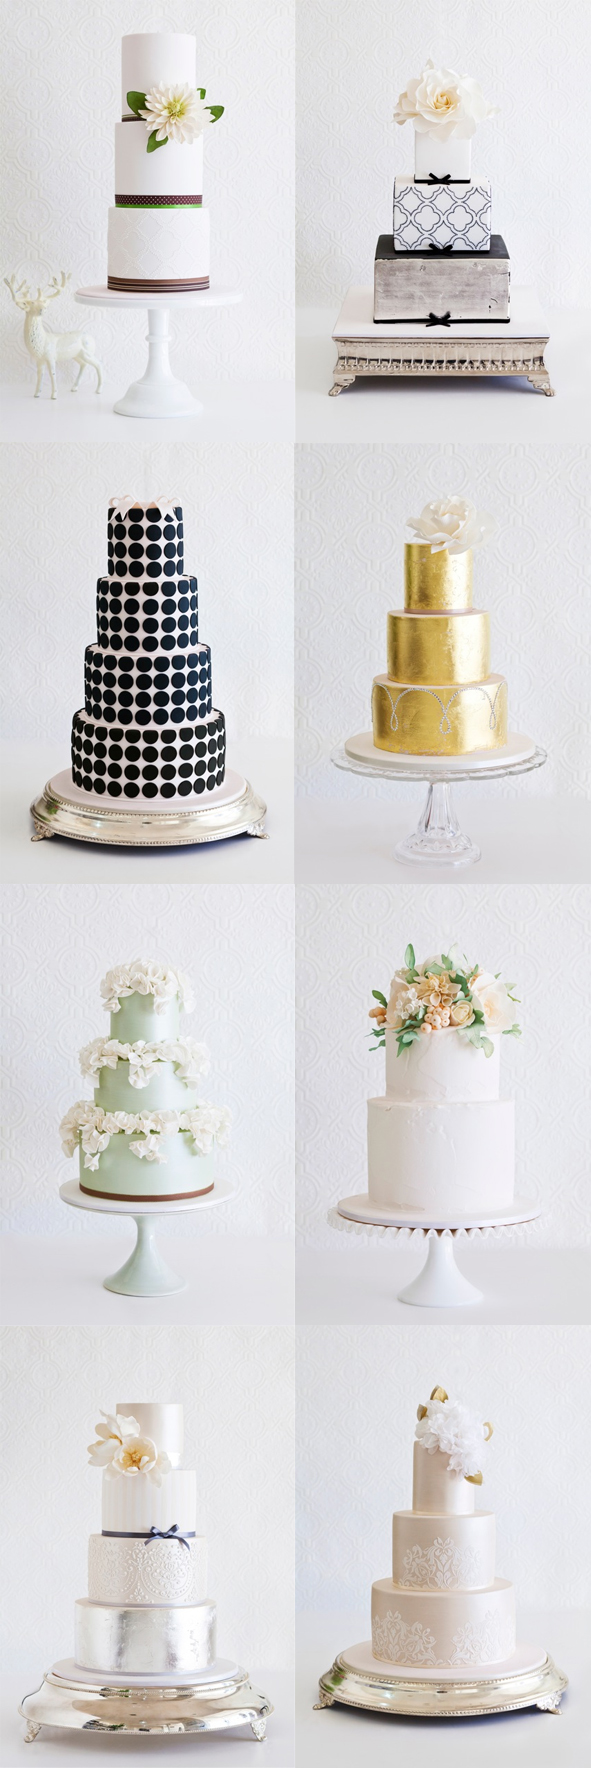 Faye Cahill New Cake Designs | Inspiration+Cakes | Pinterest ...